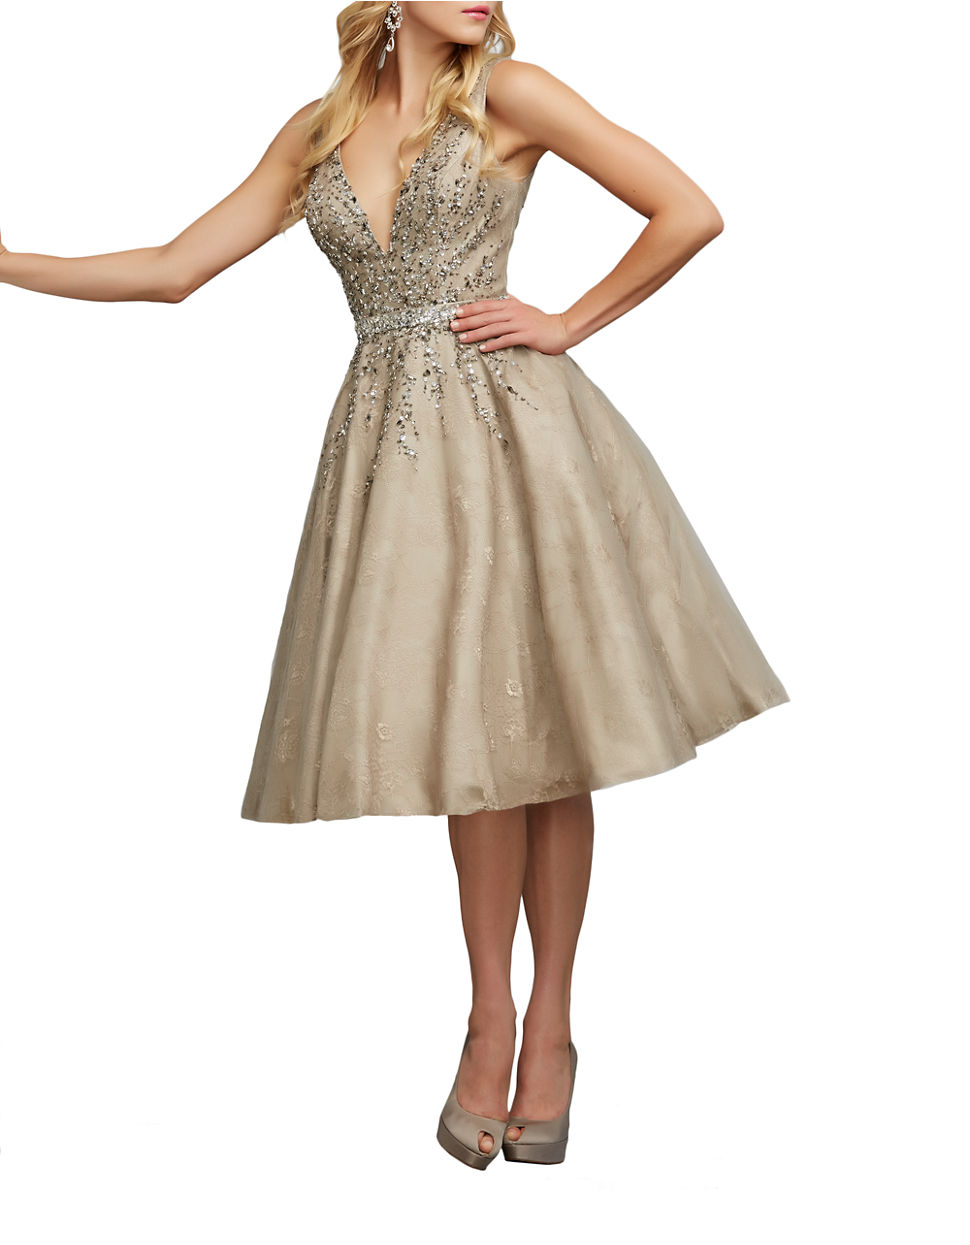 e22ea1702 Mac Duggal Beaded Lace Fit And Flare Dress in Brown - Lyst